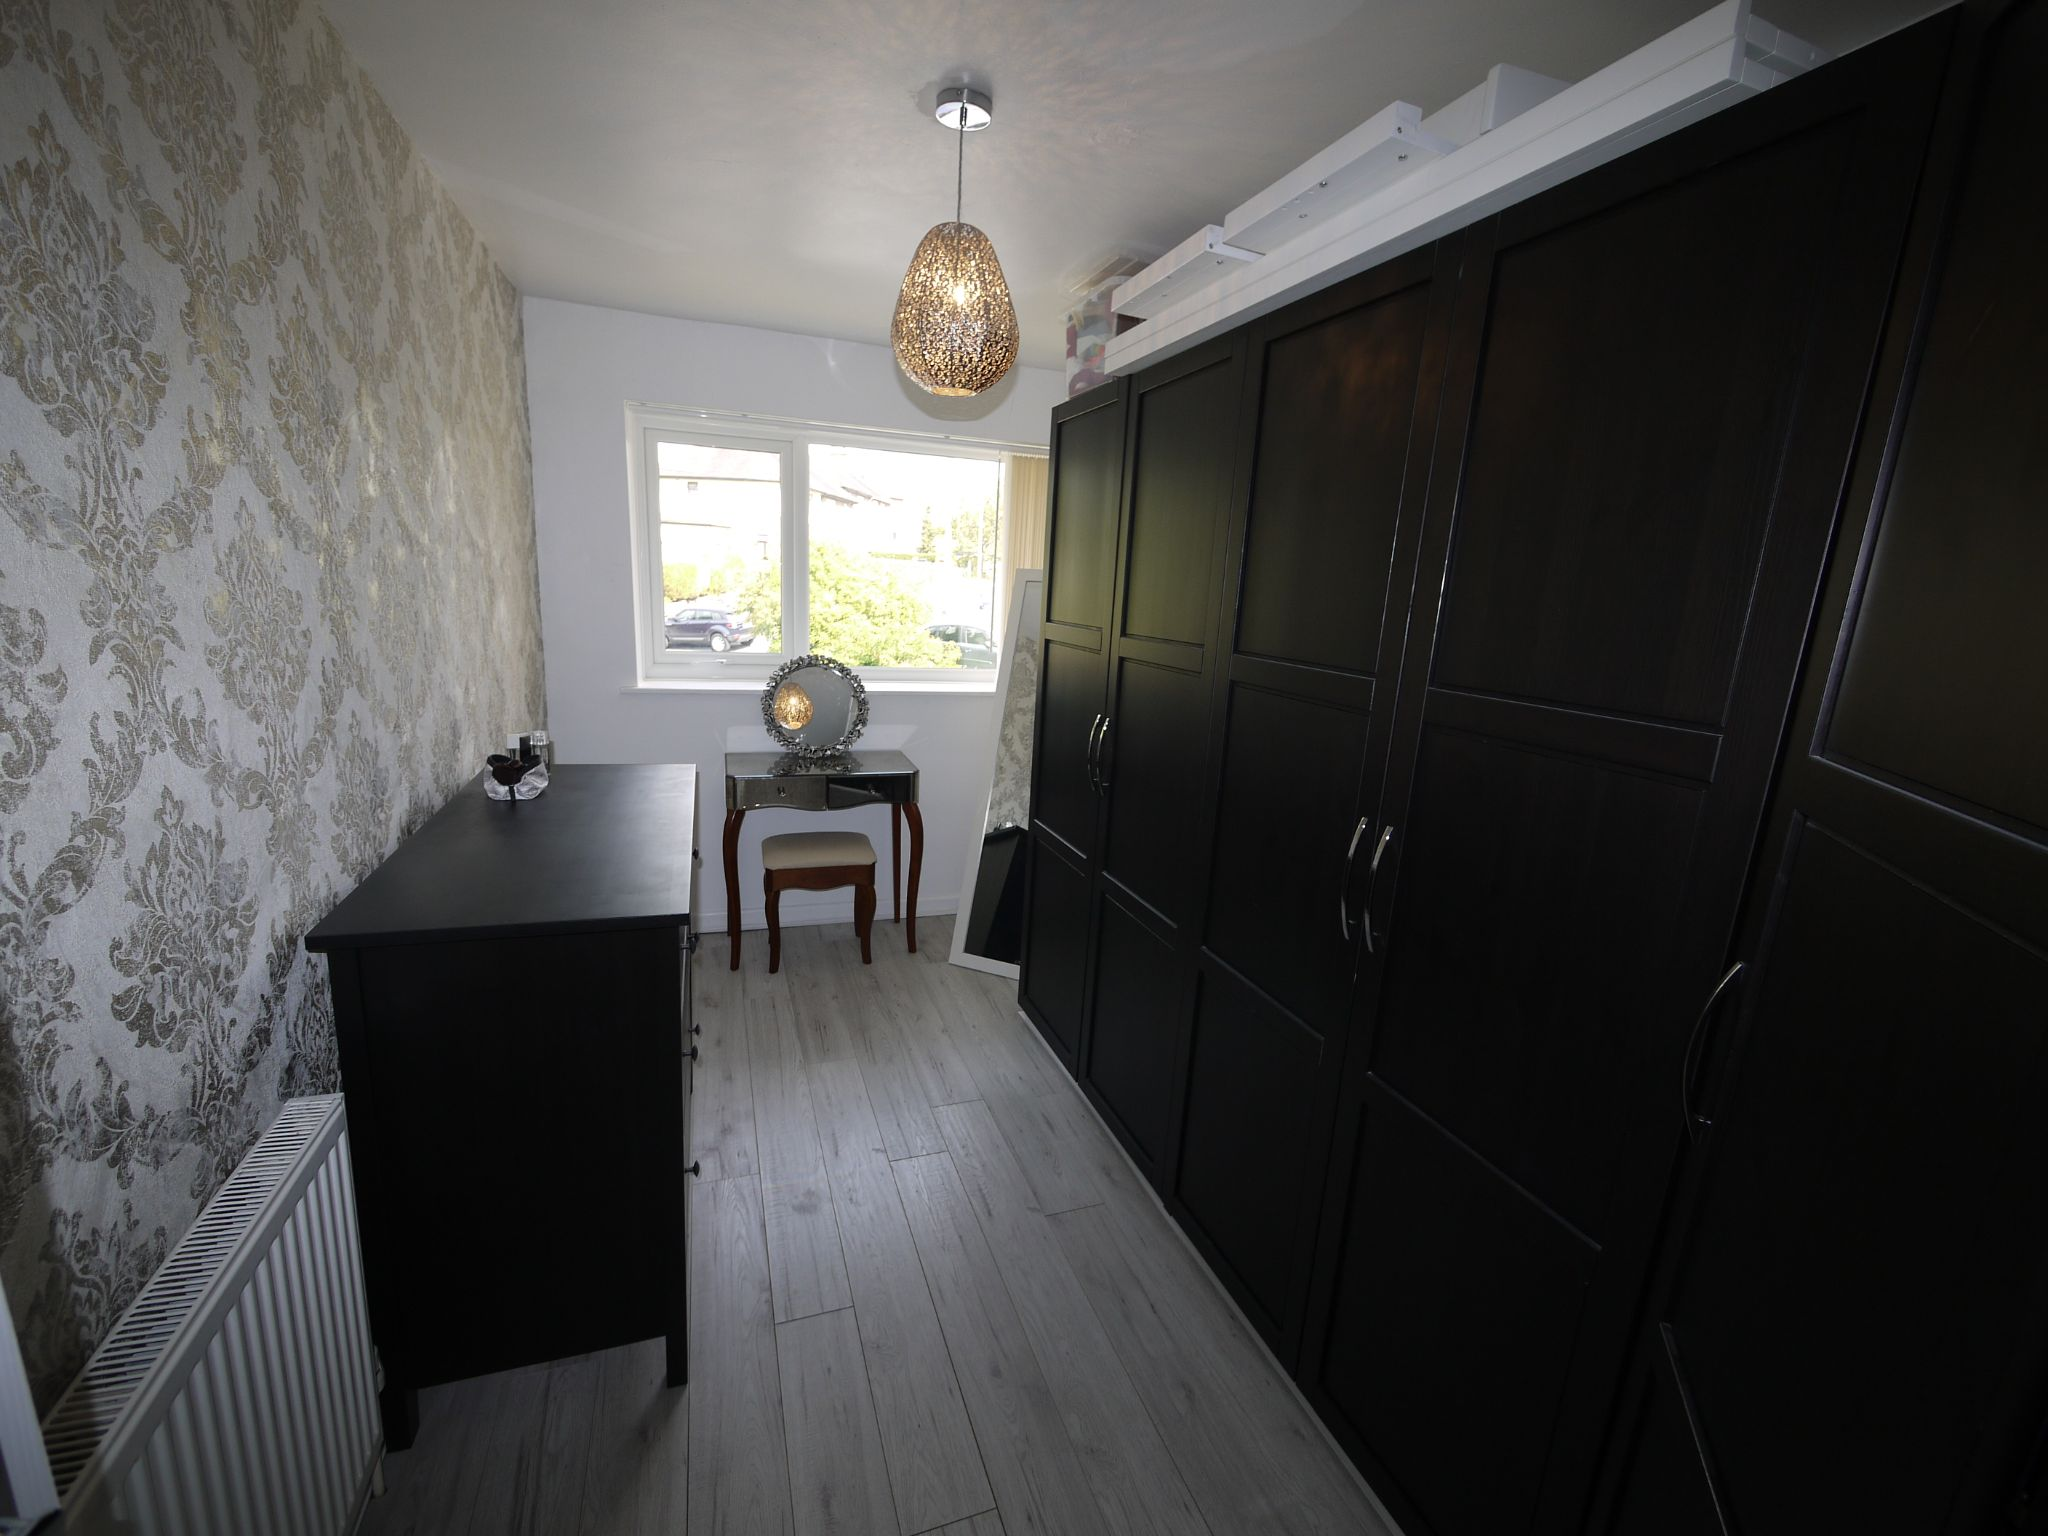 4 bedroom semi-detached house For Sale in Brighouse - Bedroom 3.